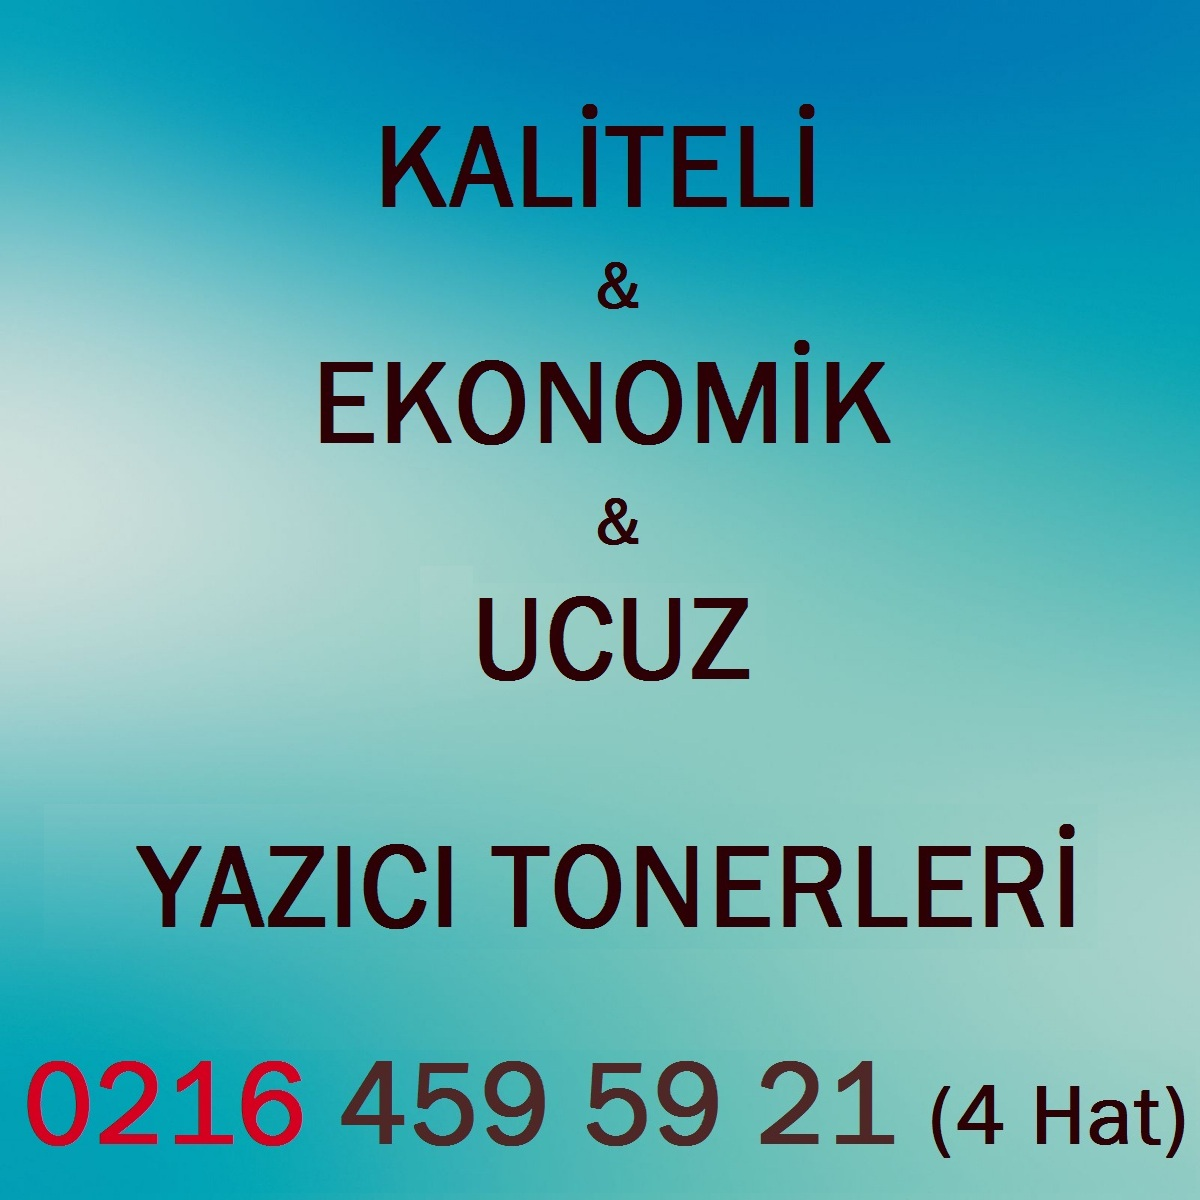 Brother MFC-7470 Toner Fiyatı